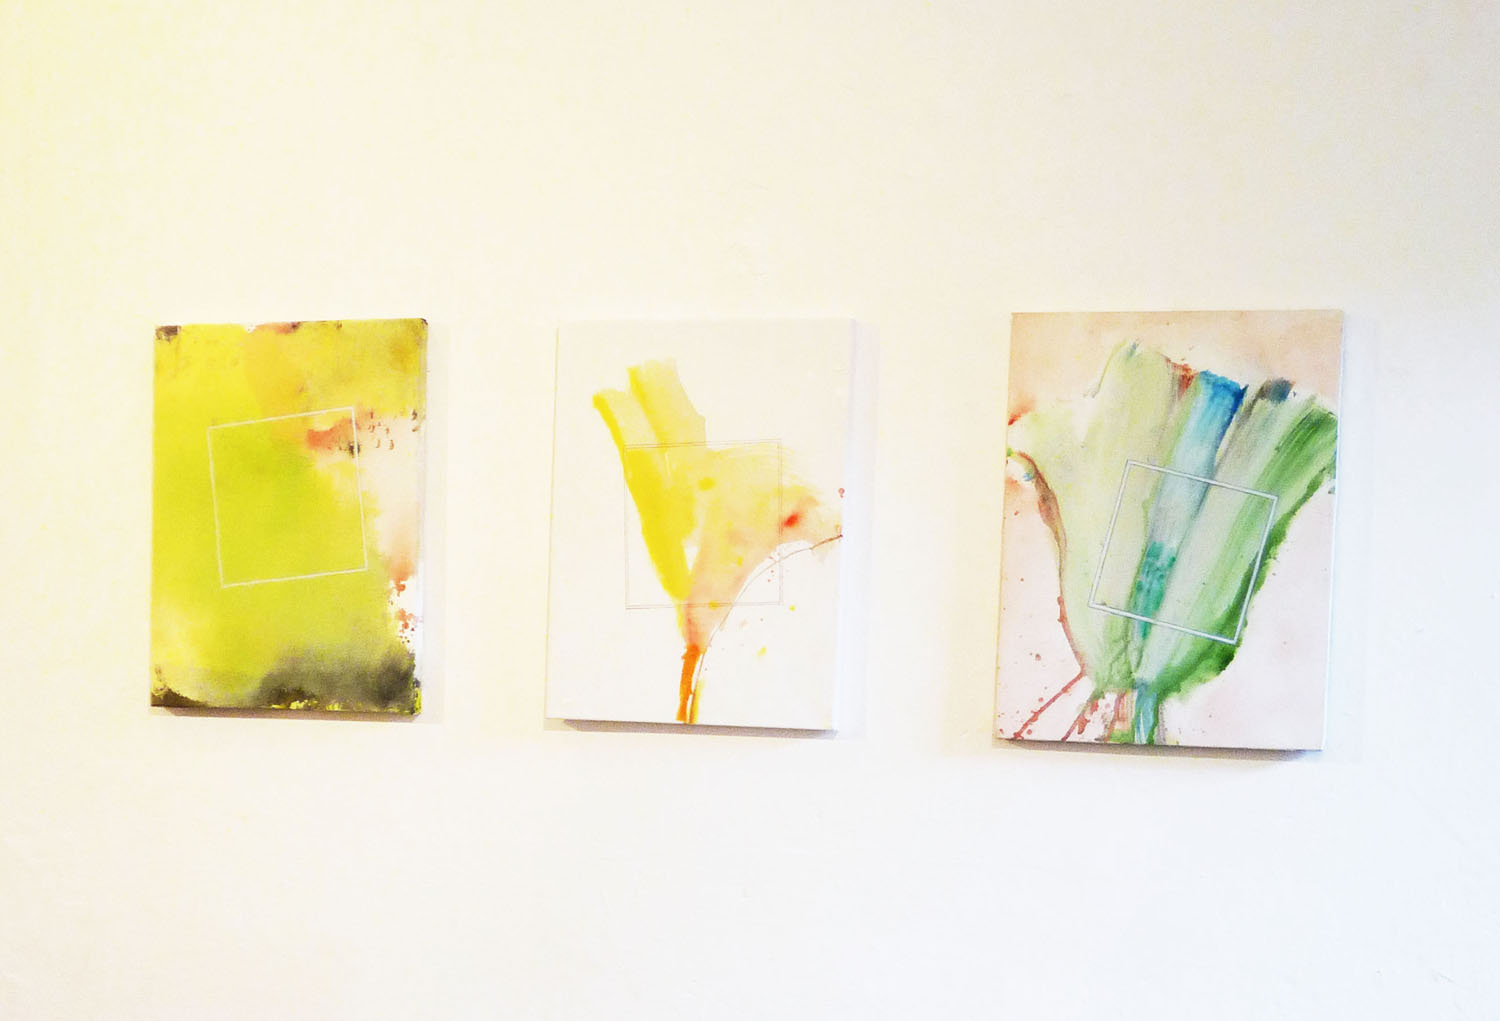 Robert Janz_Installation Shot III.jpg